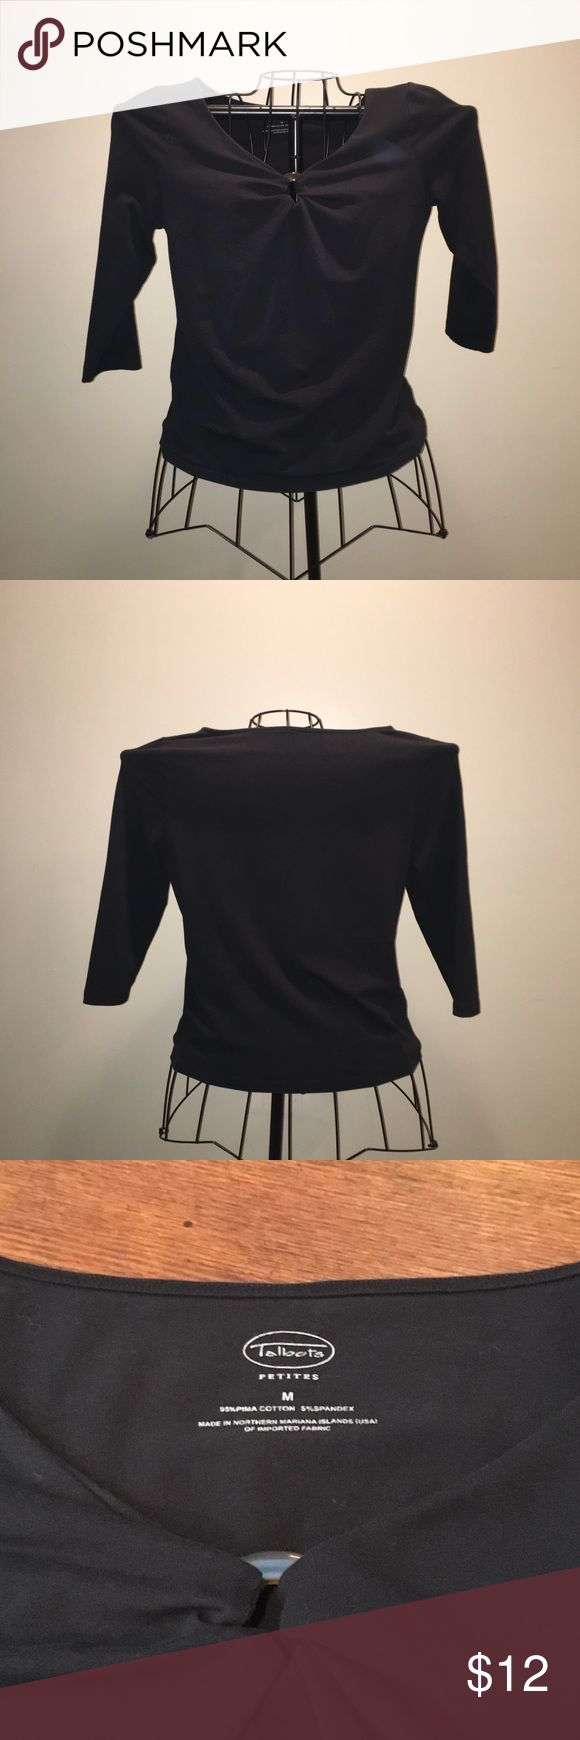 """Talbots black 3/4 sleeve top Talbots black 3/4 sleeve top with cute tortoise ring at the bust, size M petite. 18"""" underarm to underarm, 20-1/2"""" length, 17"""" sleeve. Slight fade from normal wash and wear (Bin T) Talbots Tops Tees - Long Sleeve"""